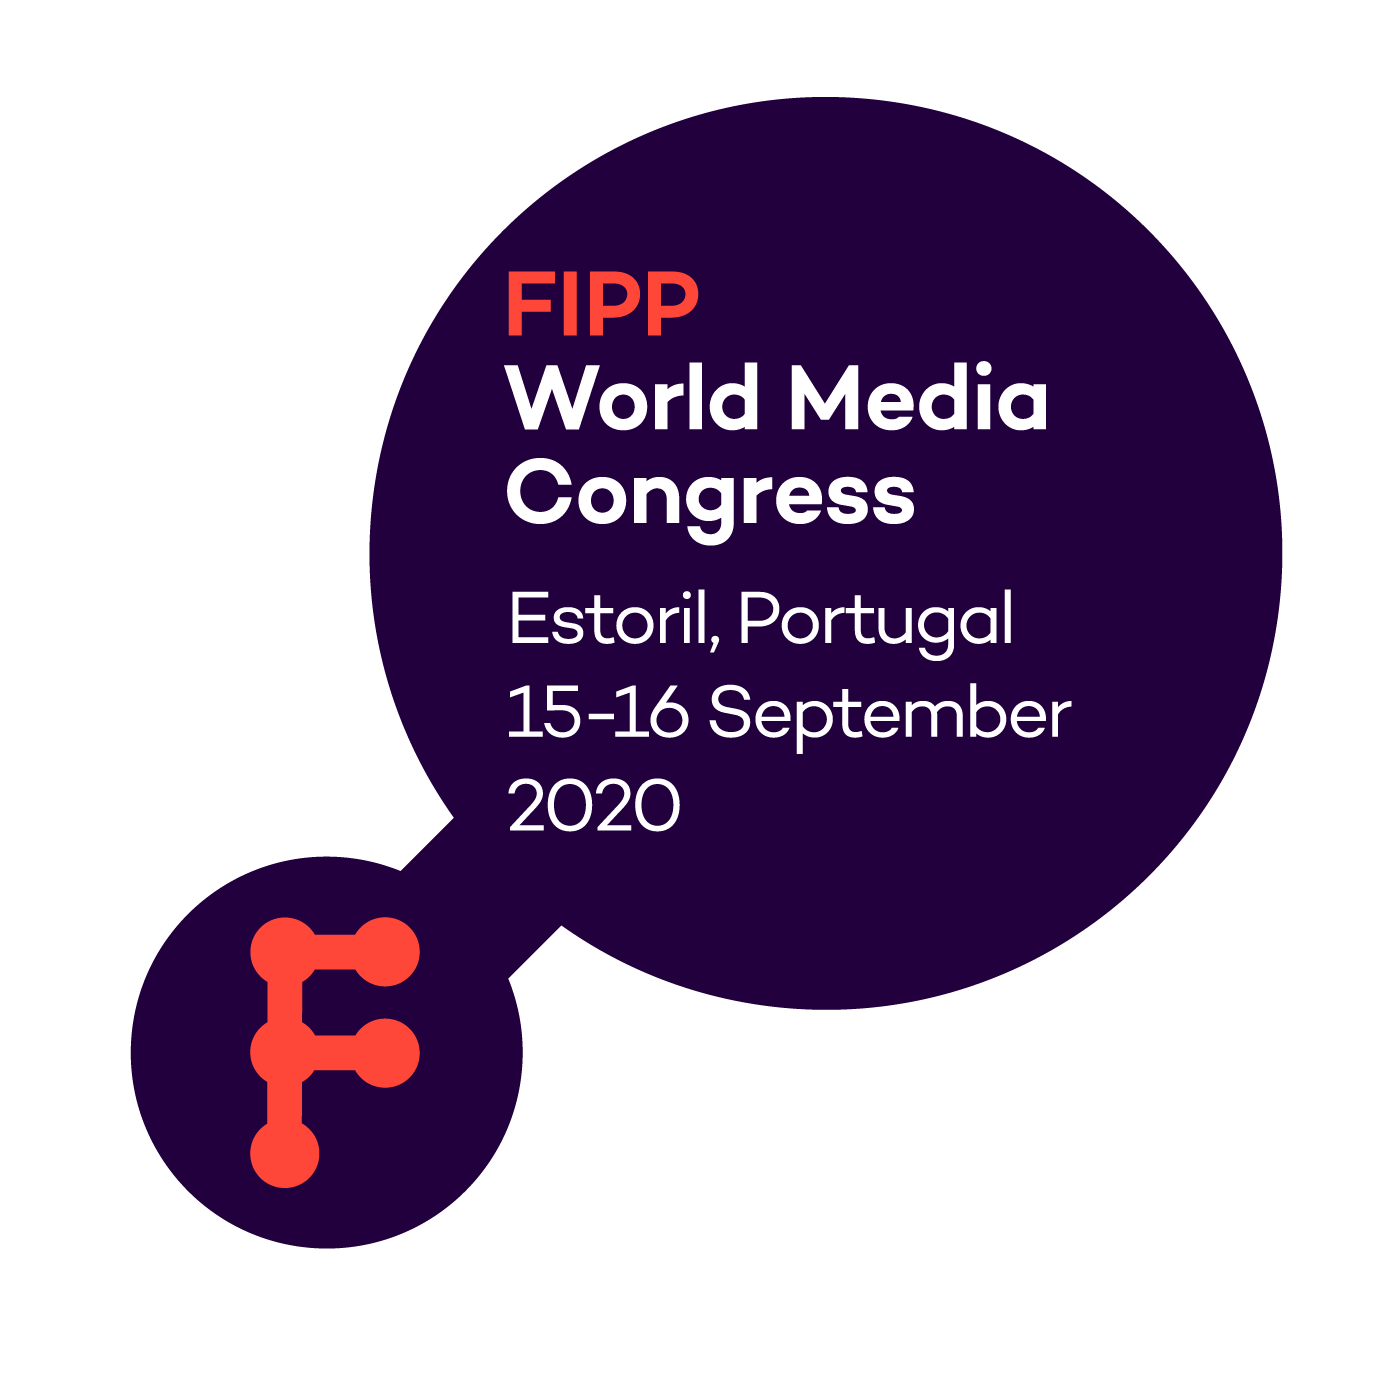 FIPP World Media Congress 2020 logo ()